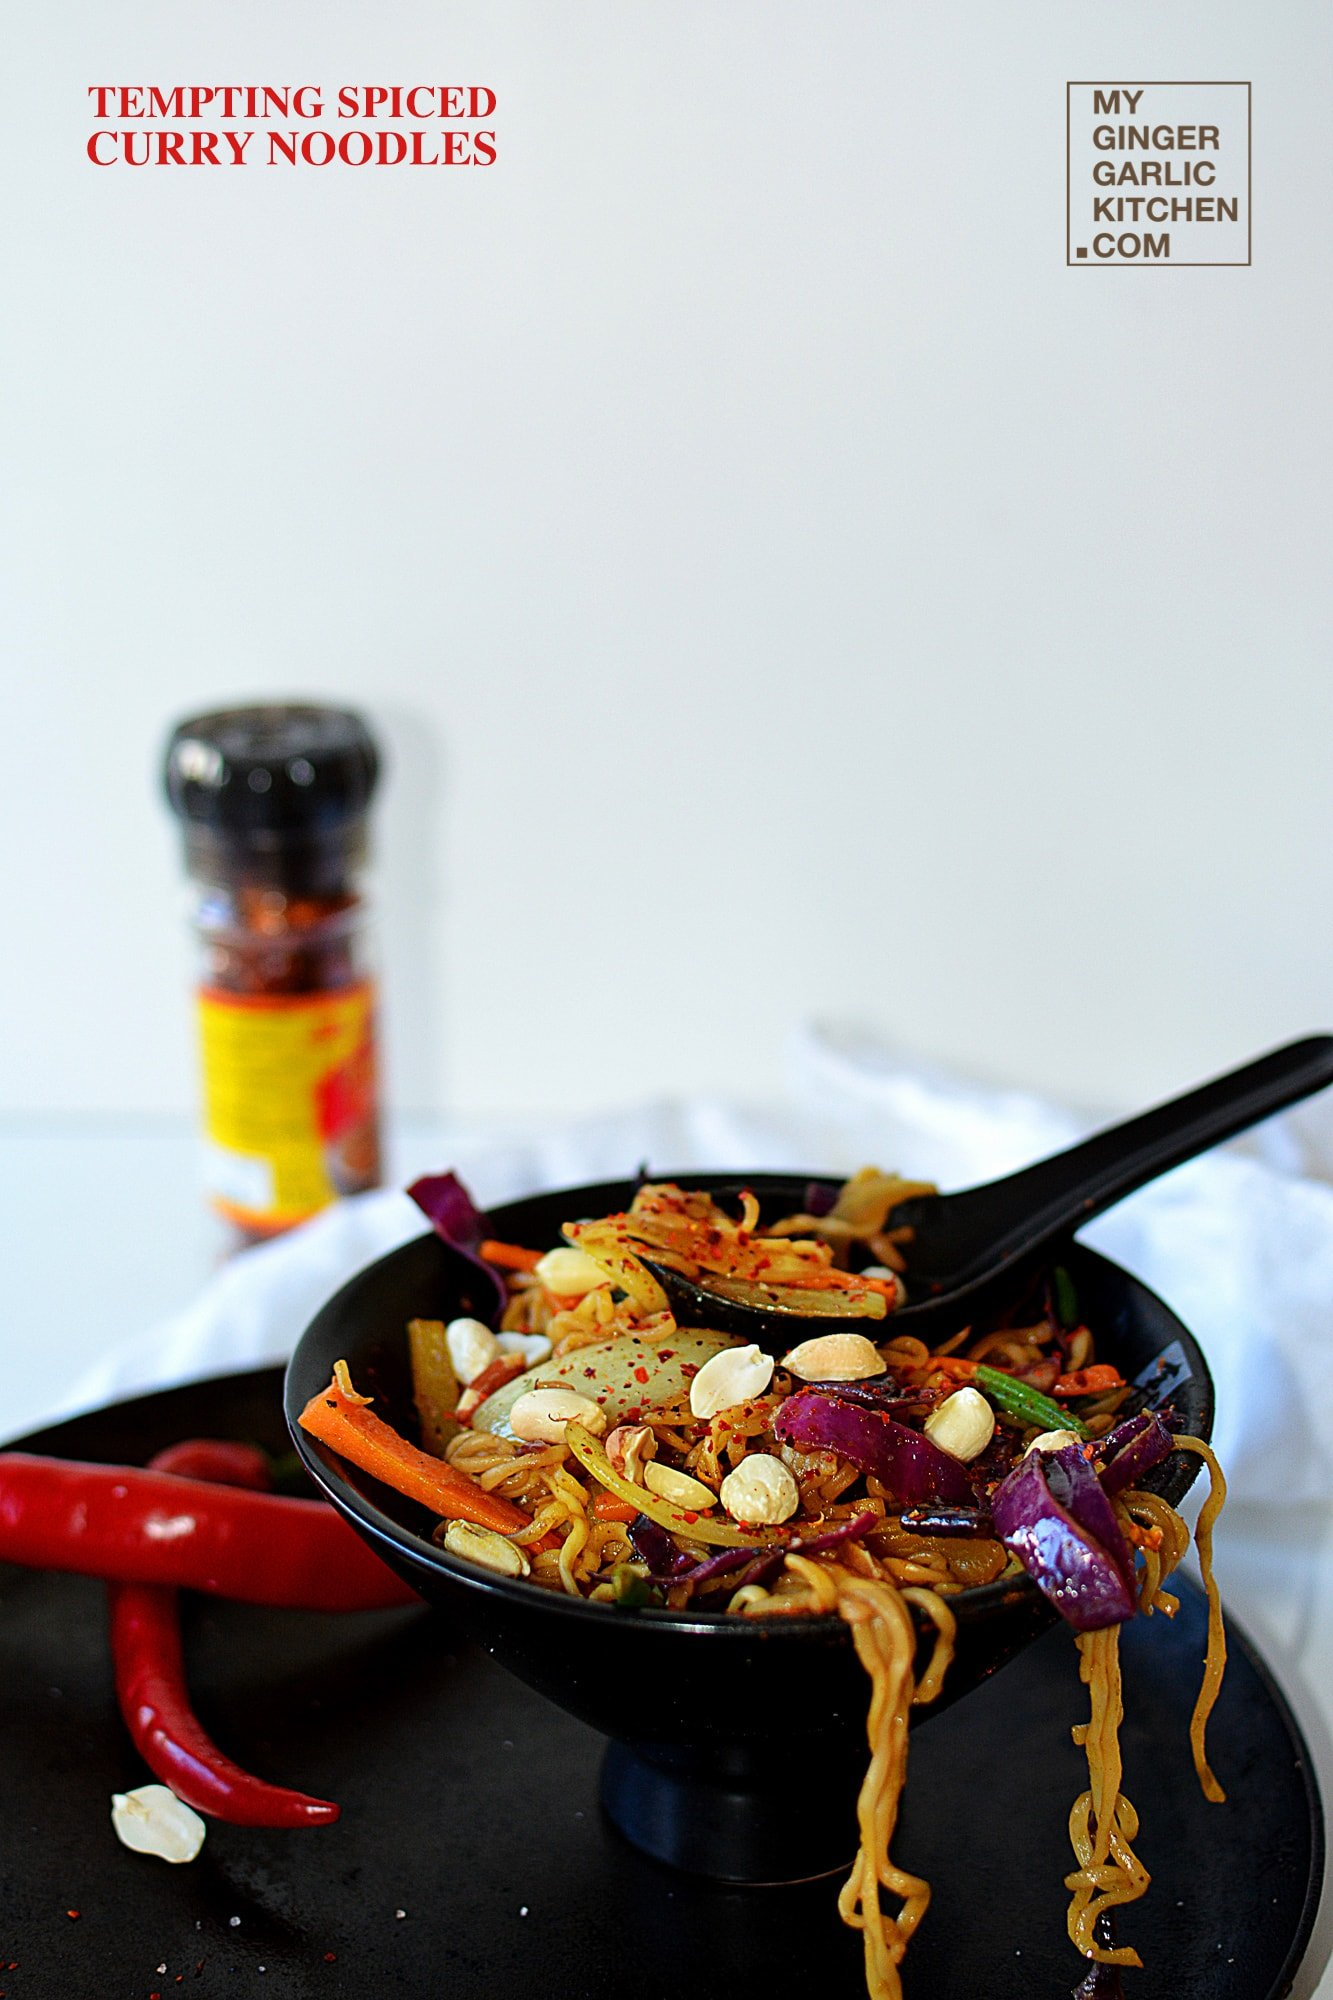 Image - recipe tempting spiced curry noodles anupama paliwal my ginger garlic kitchen 1